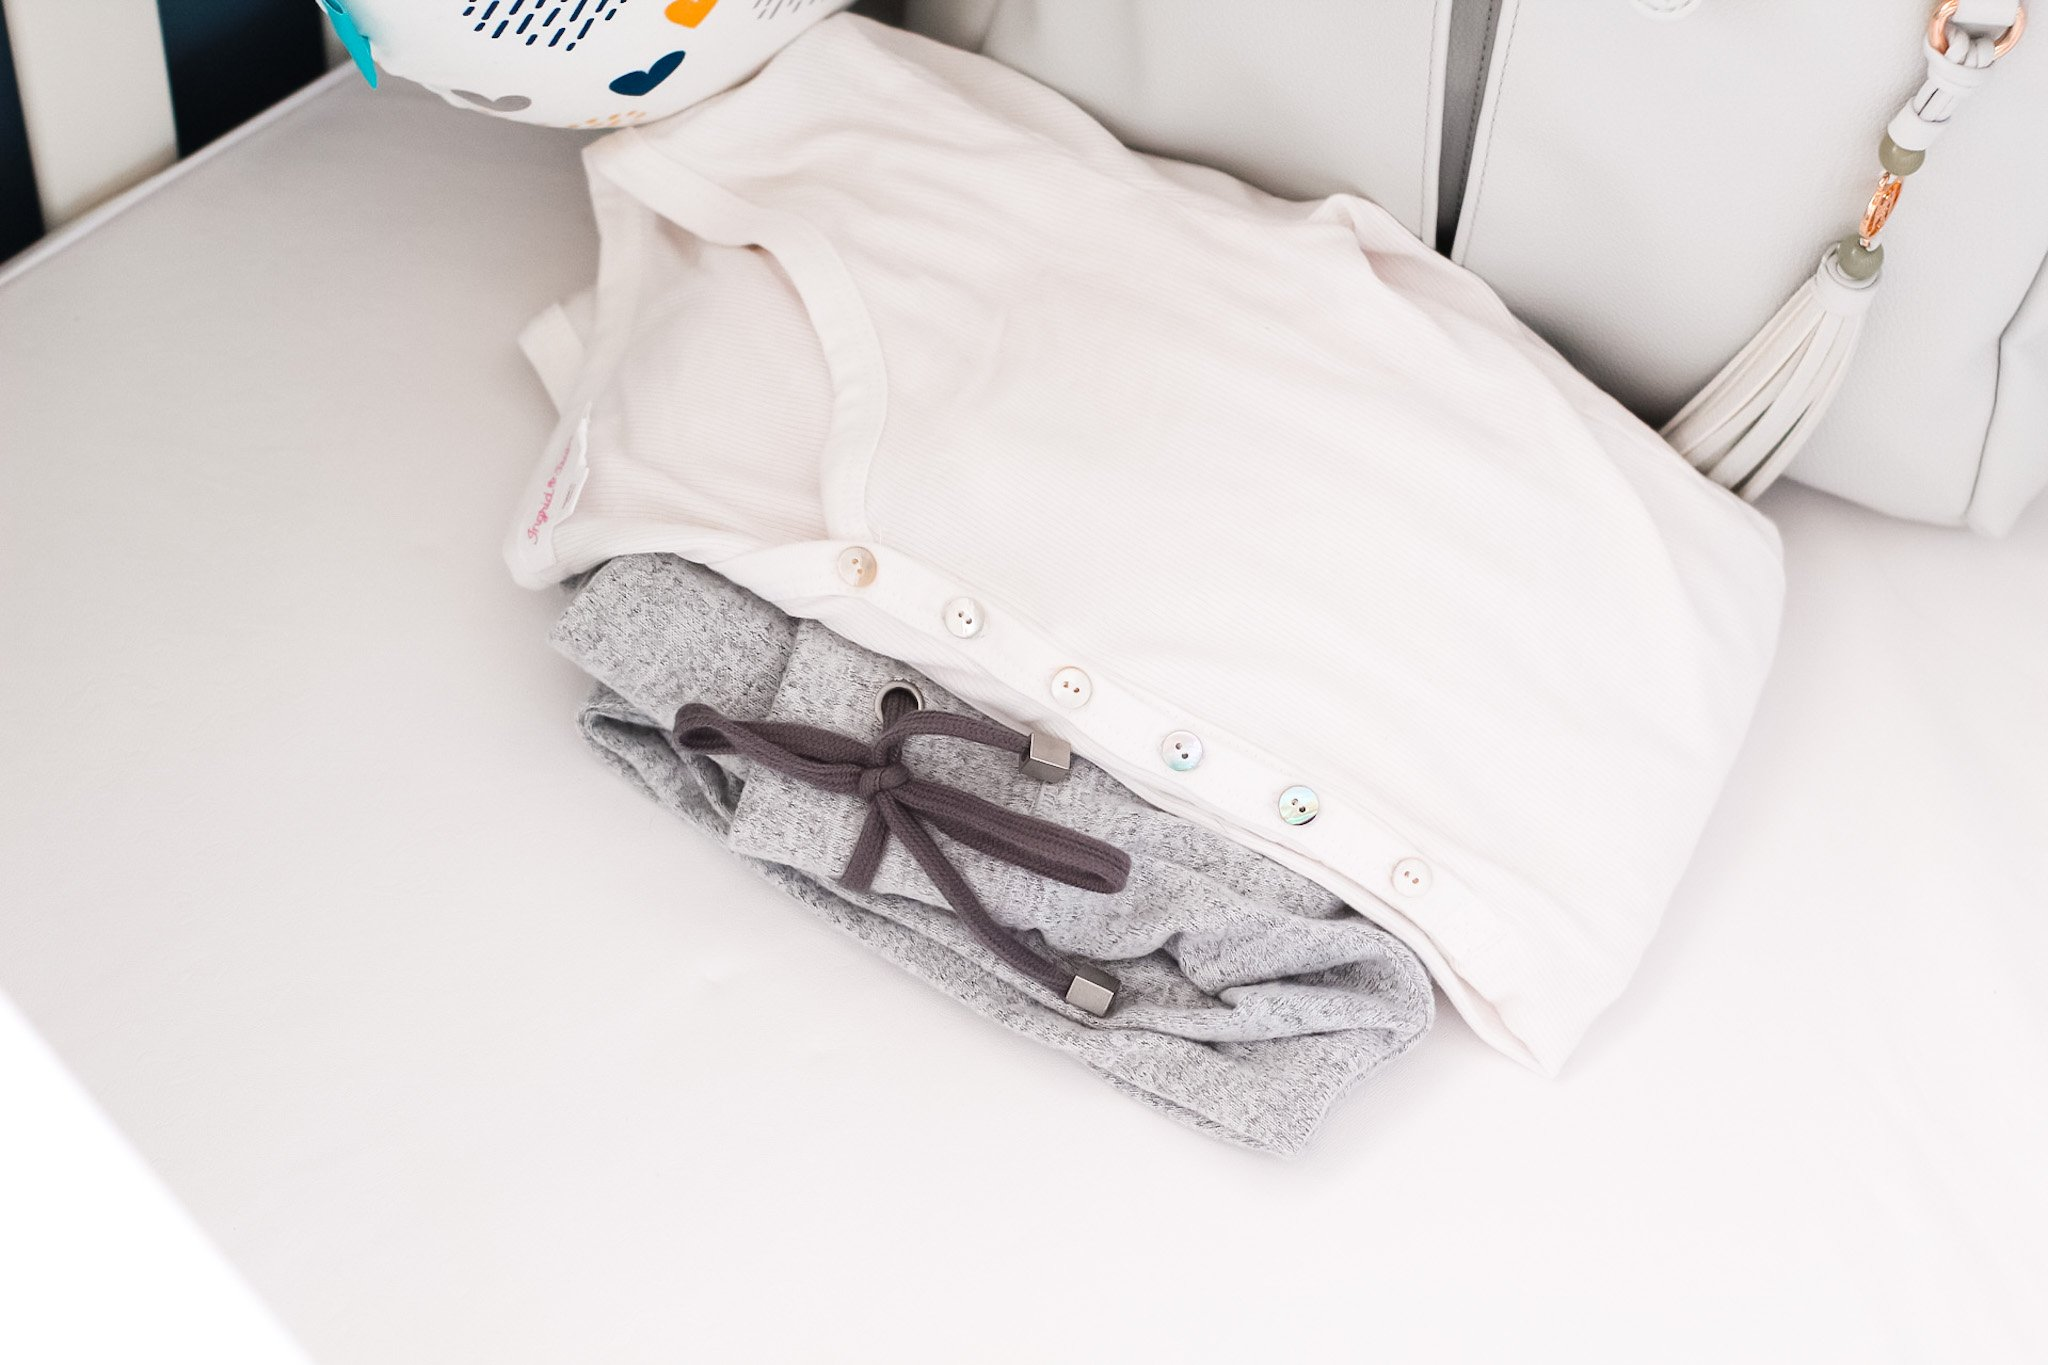 hospital clothes for c-section